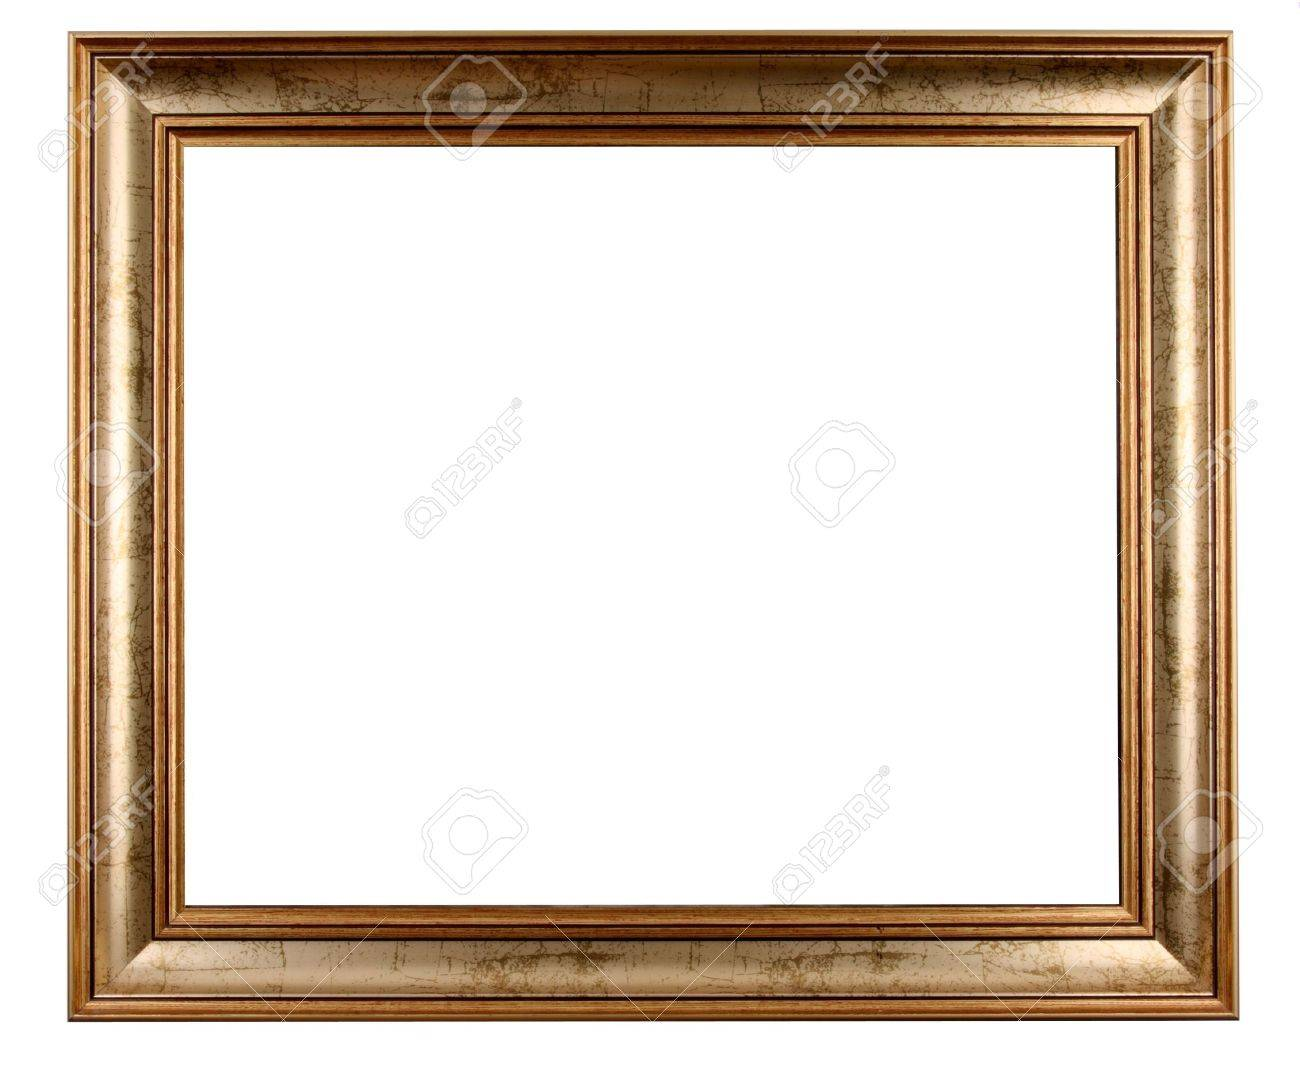 Antique Frame Stock Photo, Picture And Royalty Free Image. Image ...